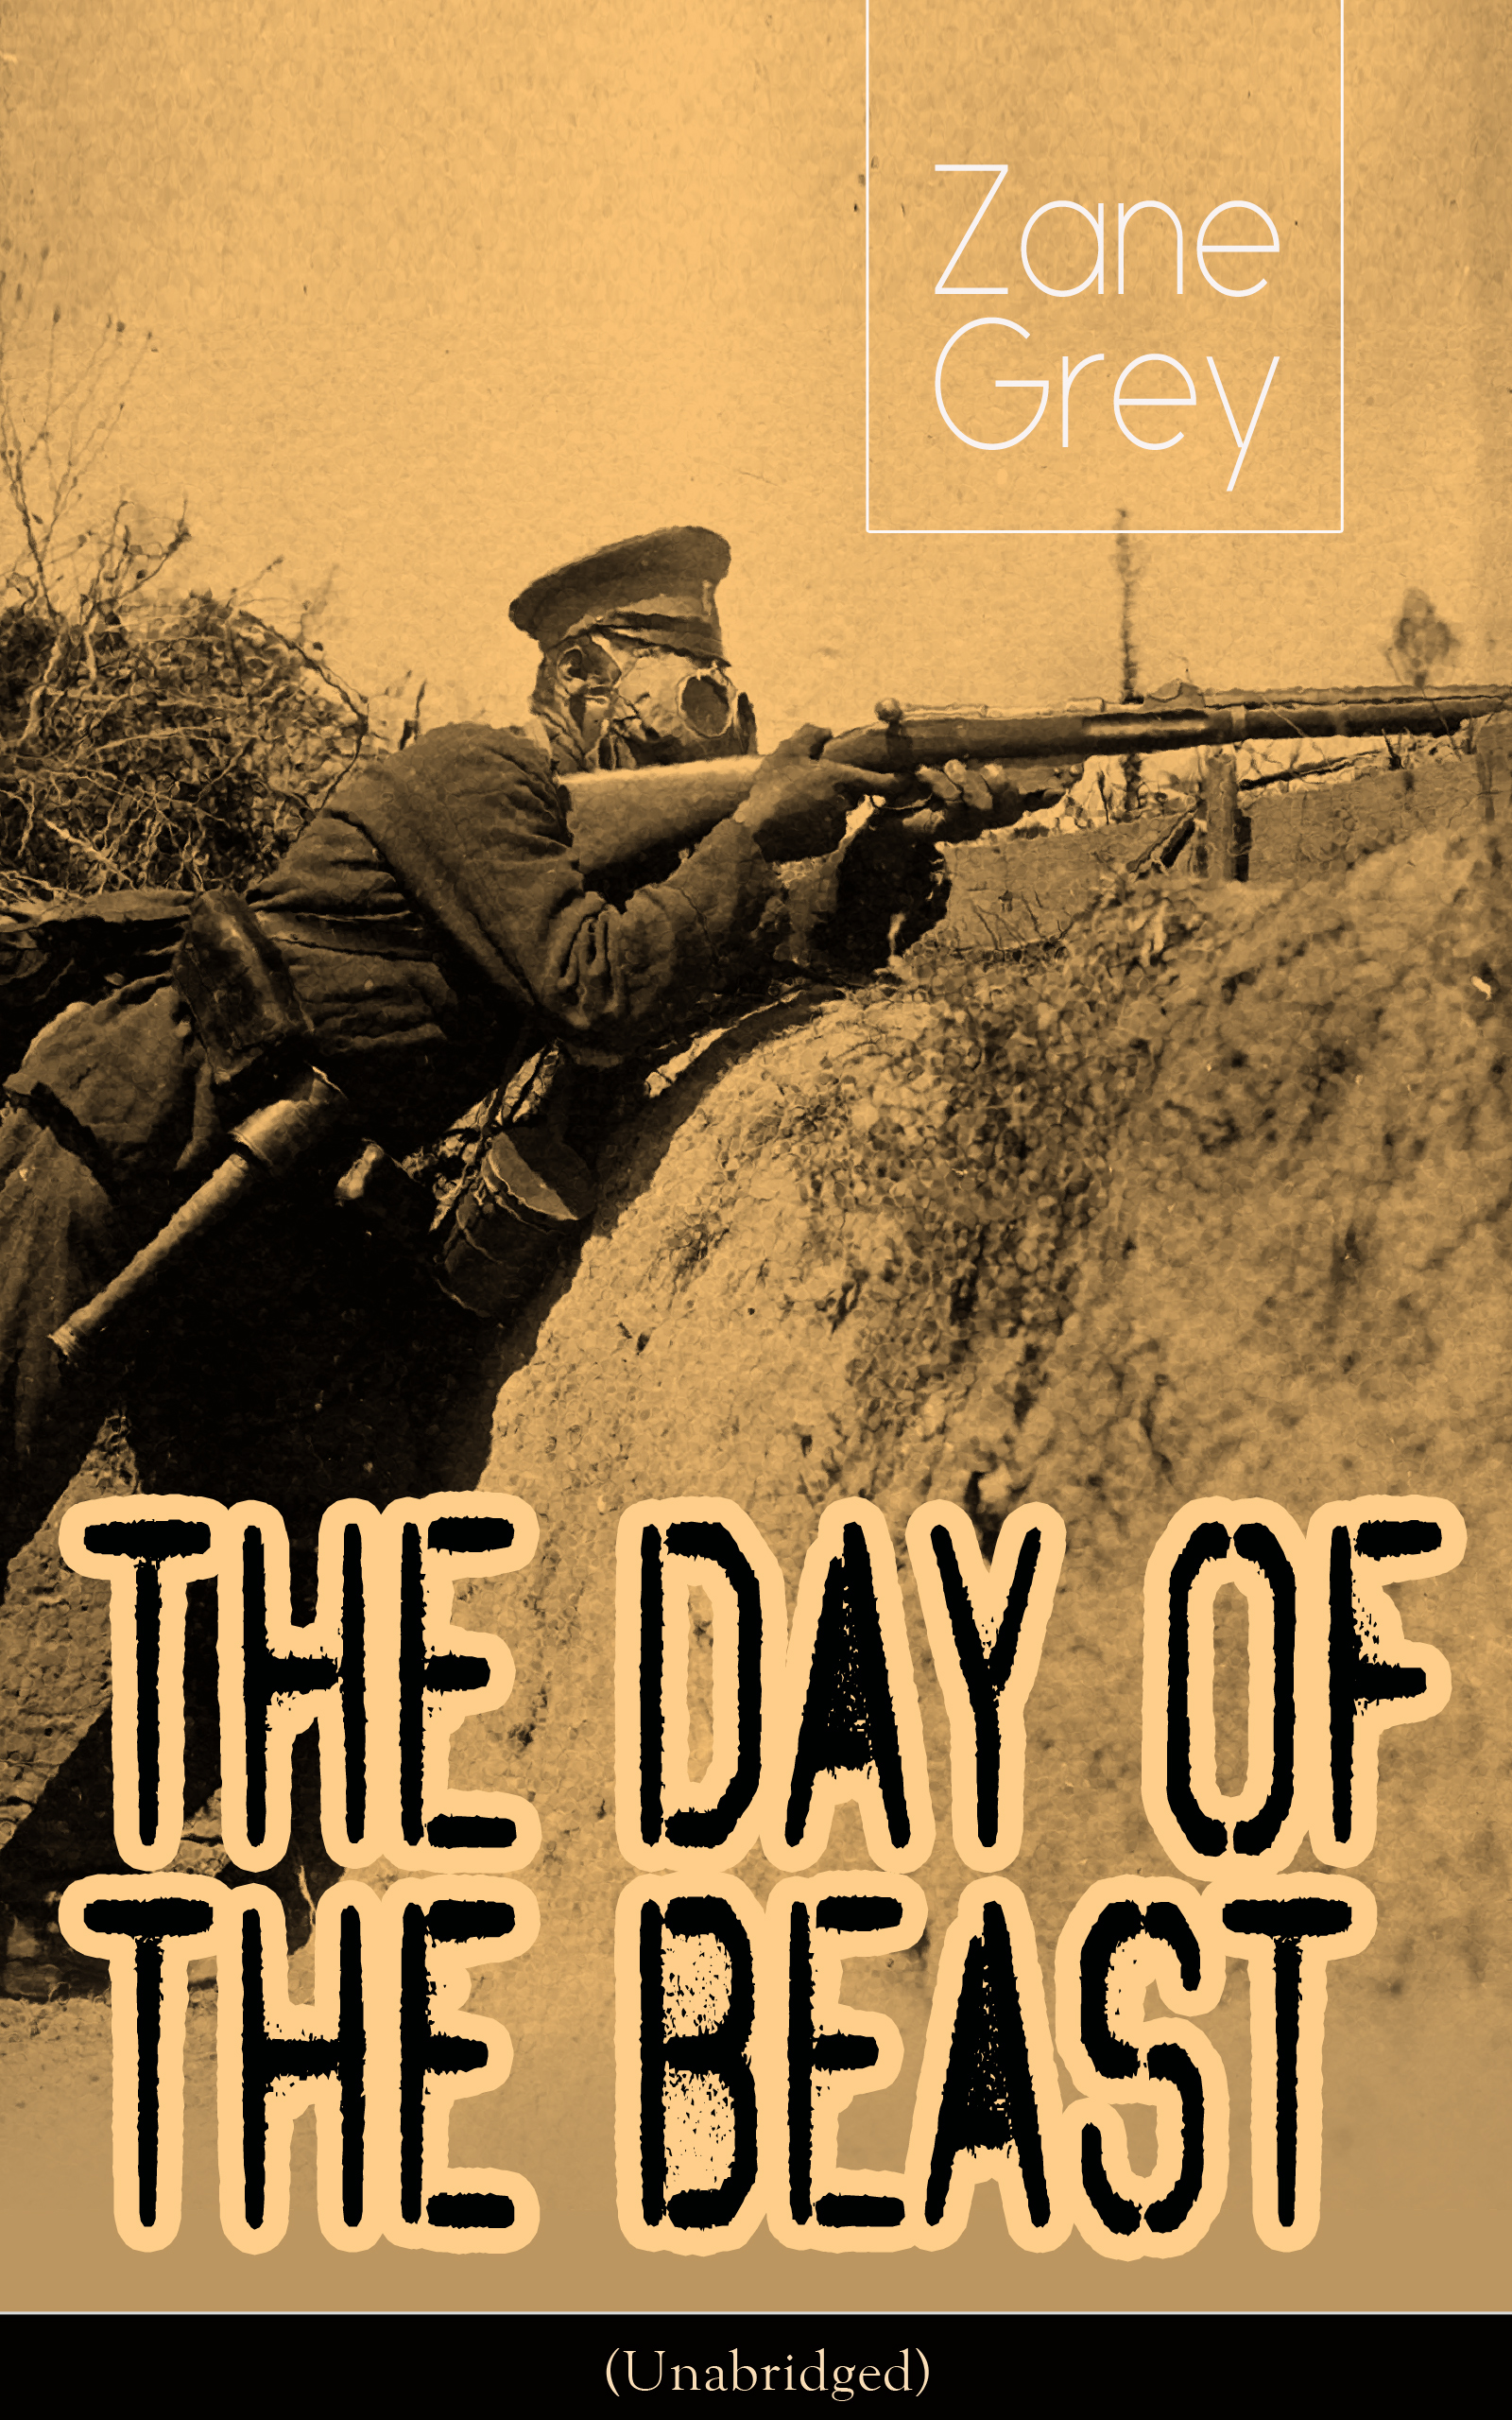 Zane Grey The Day of the Beast (Unabridged) стоимость